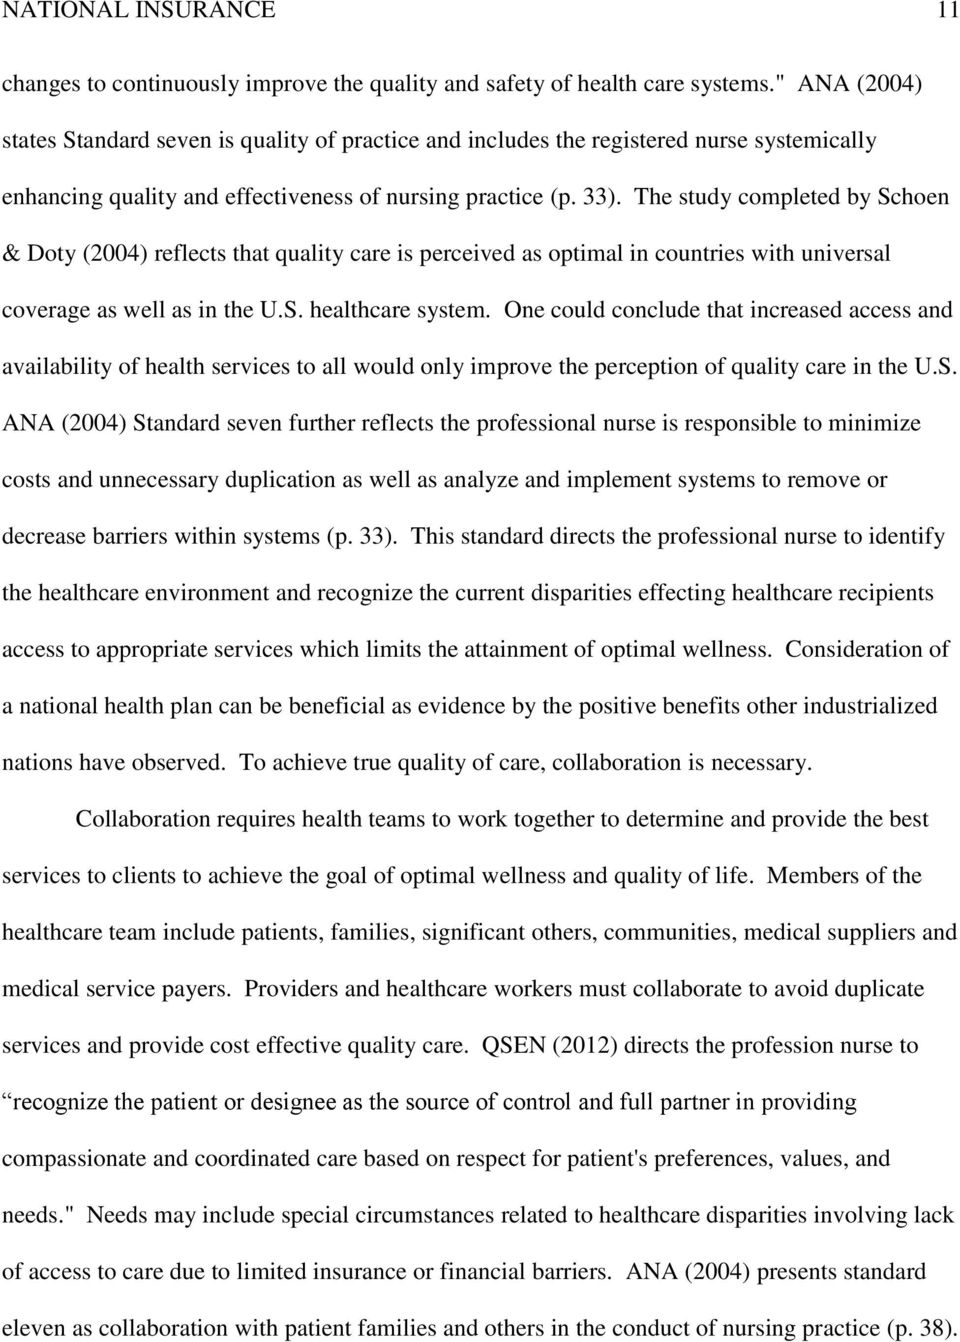 The study completed by Schoen & Doty (2004) reflects that quality care is perceived as optimal in countries with universal coverage as well as in the U.S. healthcare system.